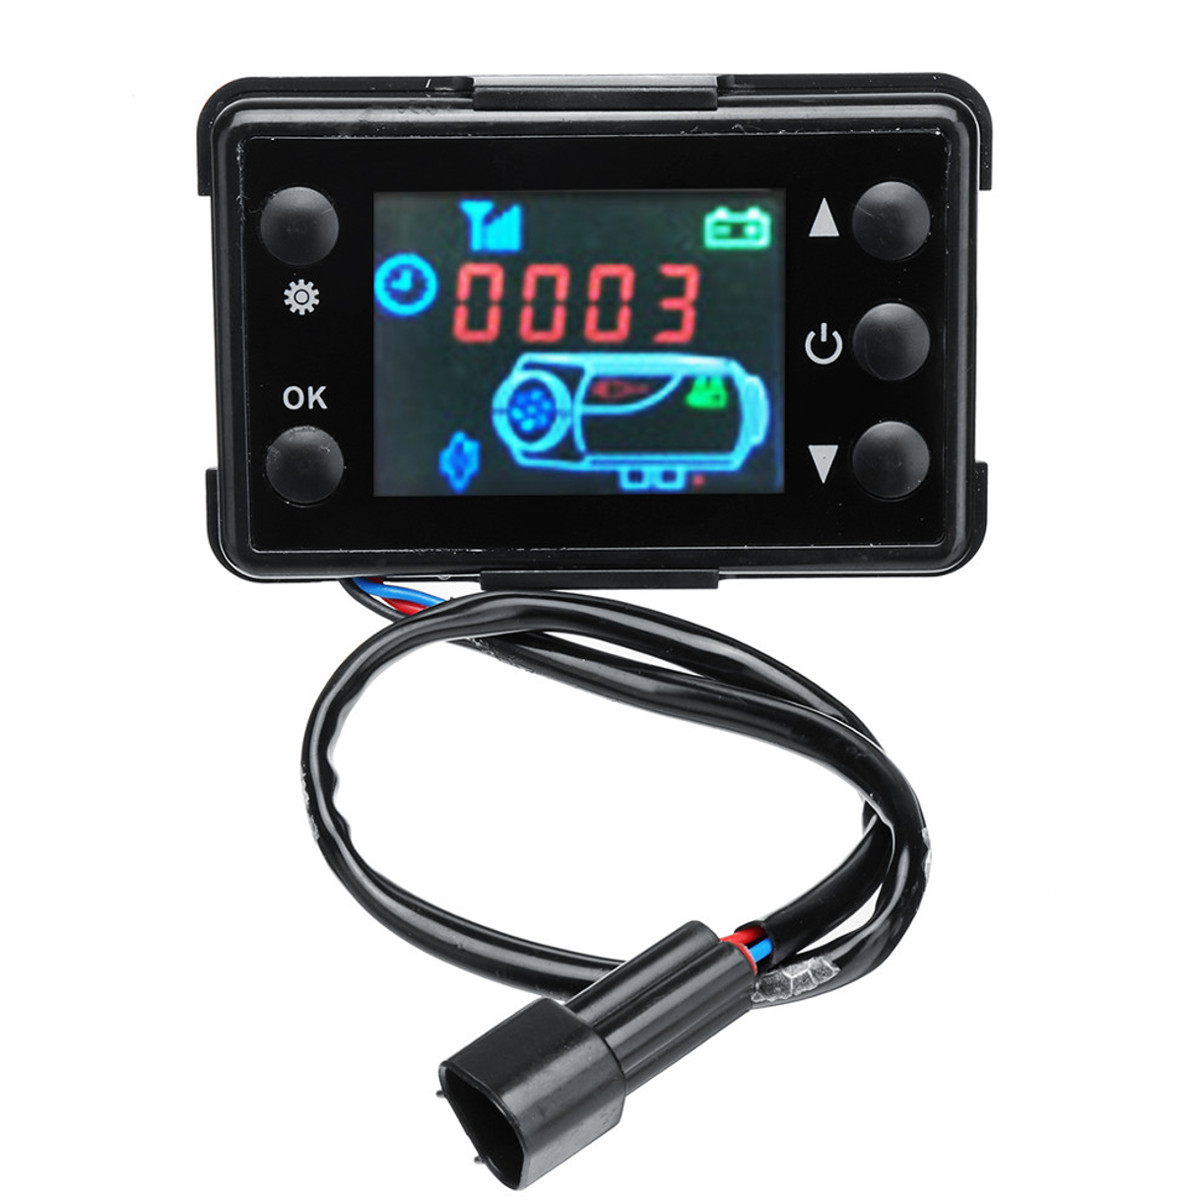 Electric Vehicle Parts 12v/24v 3/5kw Lcd Monitor Parking Heater Switch Car Heating Device Controller Universal For Car Track Air Heater